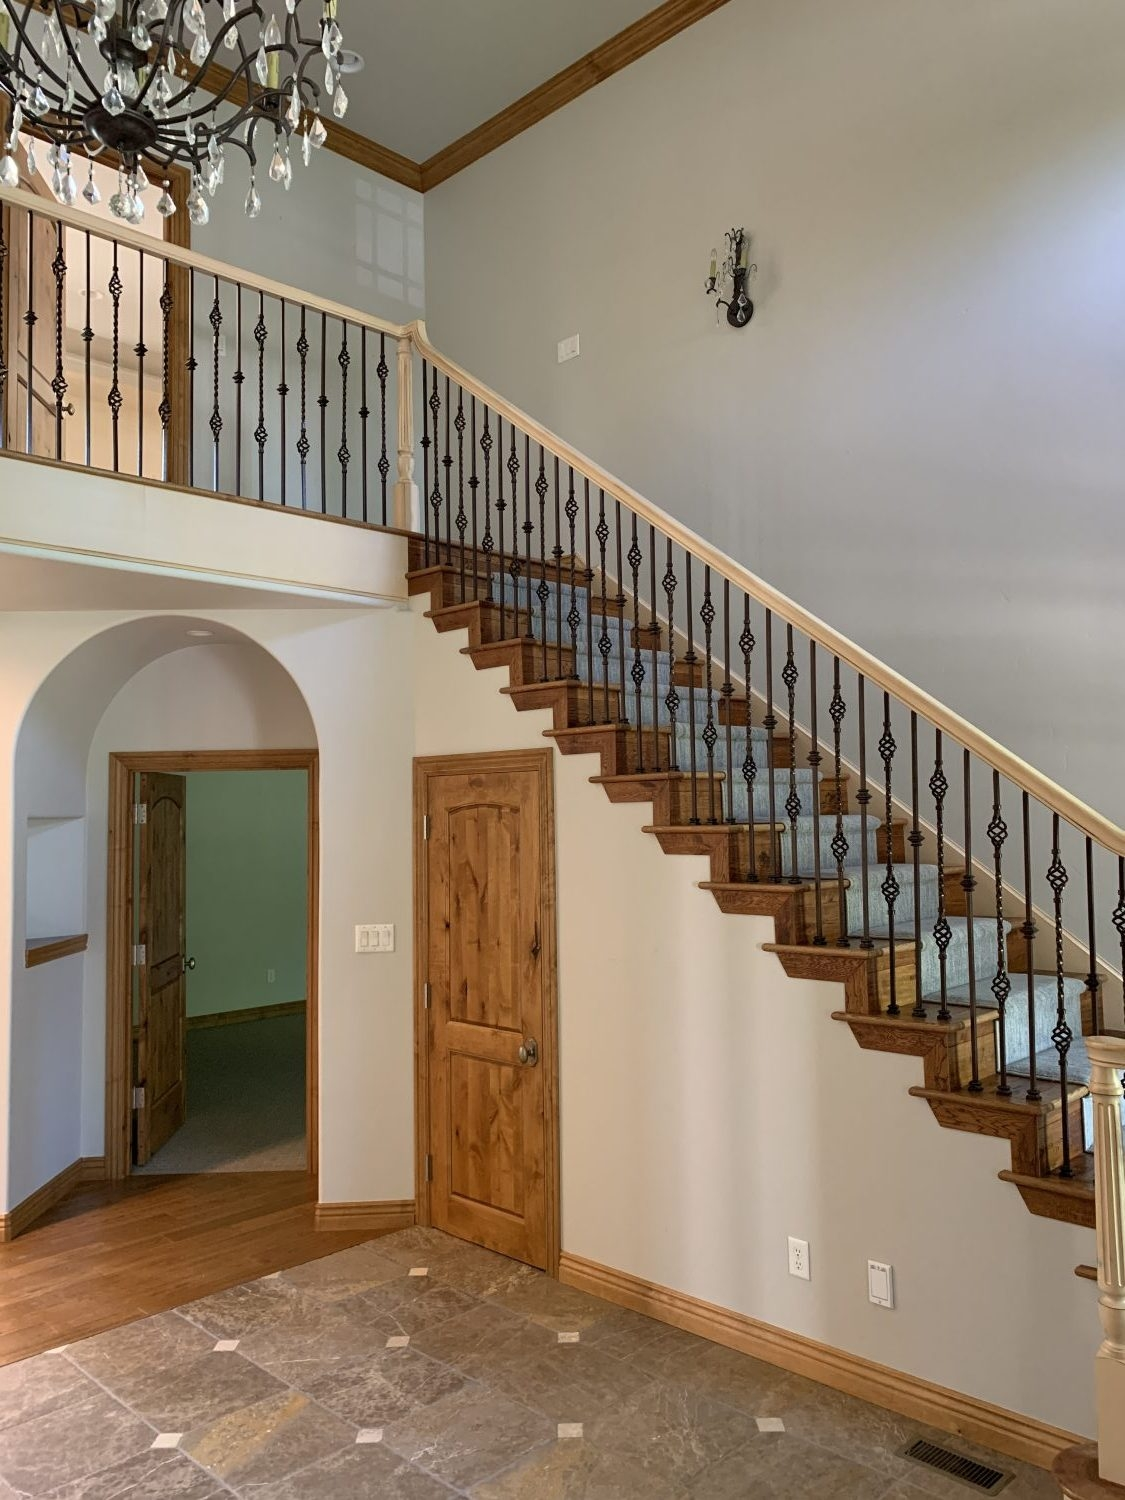 The Top Staircase Railing Inspiration Photos We Re Using To Design | Two Tone Stair Railing | White | Indoor | Antique | Mansion | Country Style